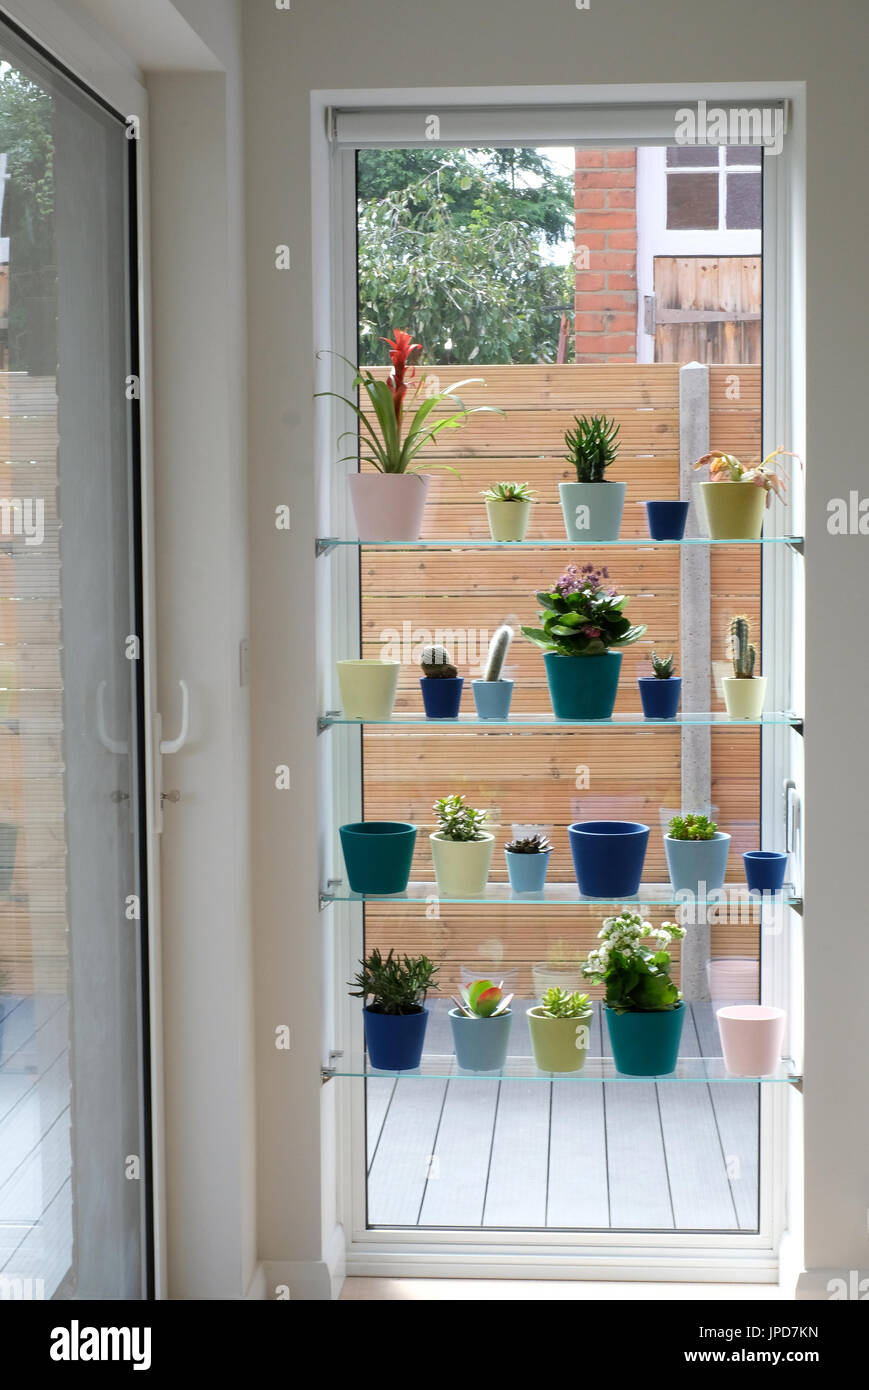 Window Display Of A Variety Of Cactus And Succulent Plants In Stock Photo Alamy